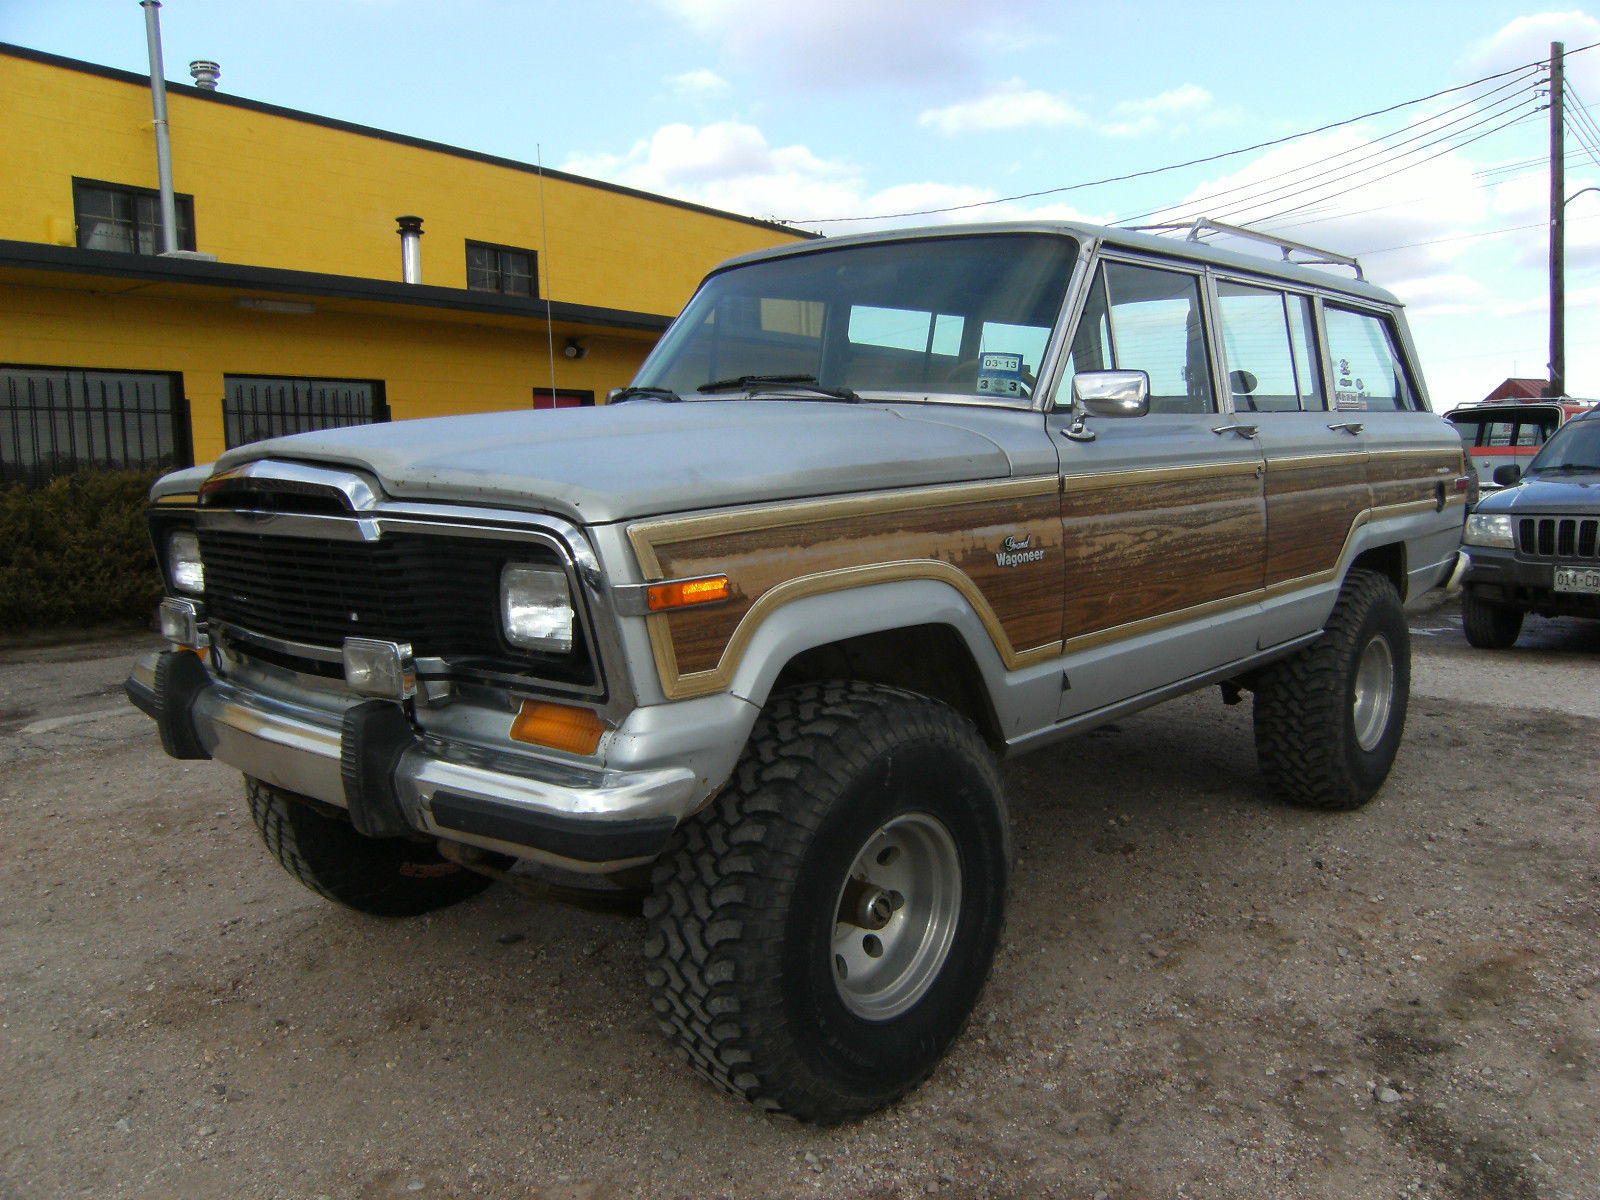 1984 jeep grand wagoneer limited sport utility 4 door 5 9l classic jeep wagoneer 1984 for sale. Black Bedroom Furniture Sets. Home Design Ideas